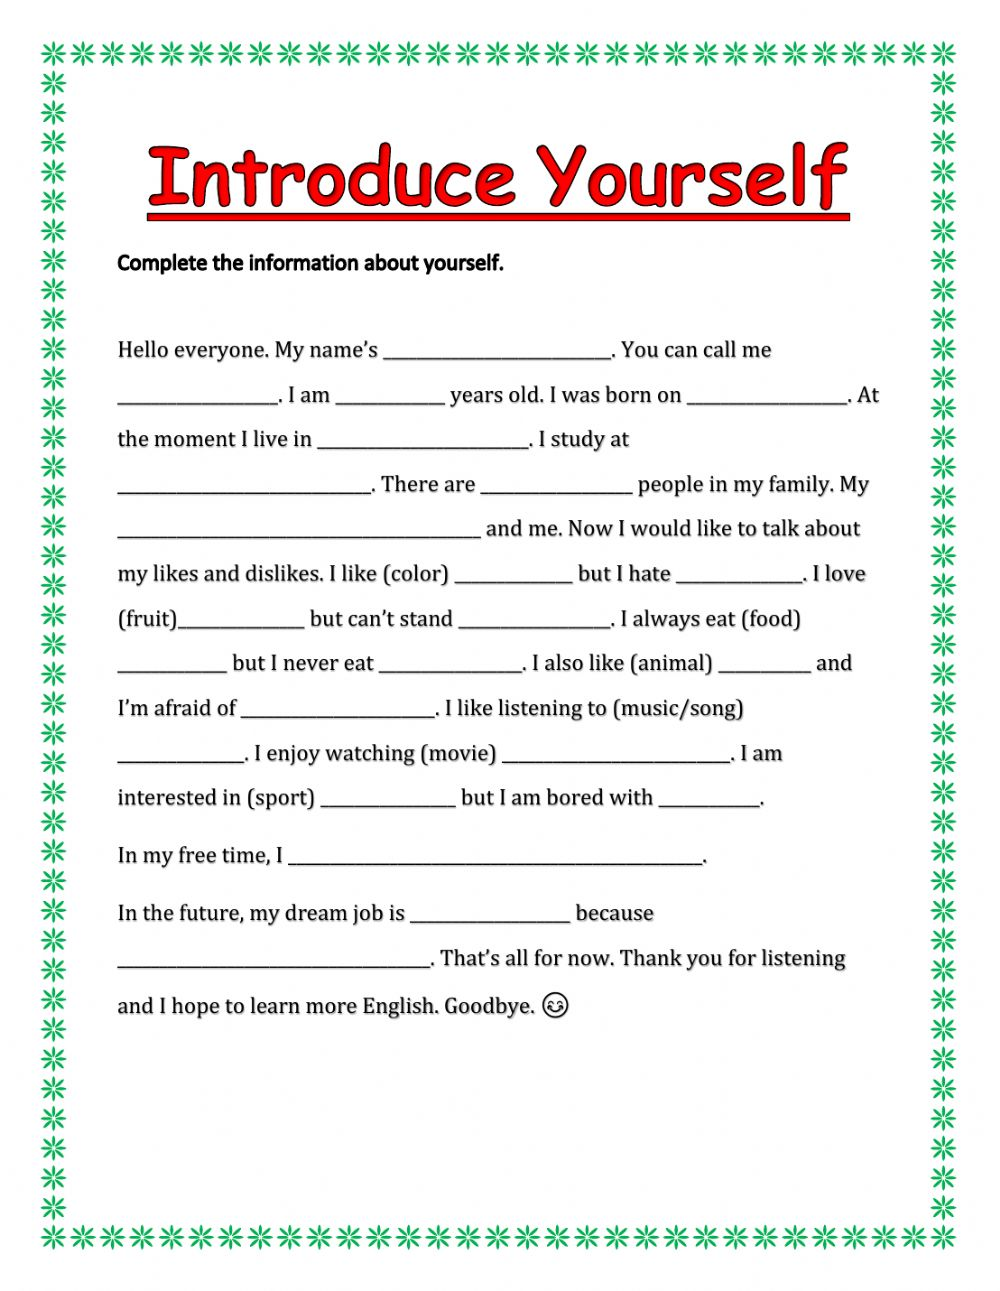 medium resolution of Introduce yourself interactive exercise